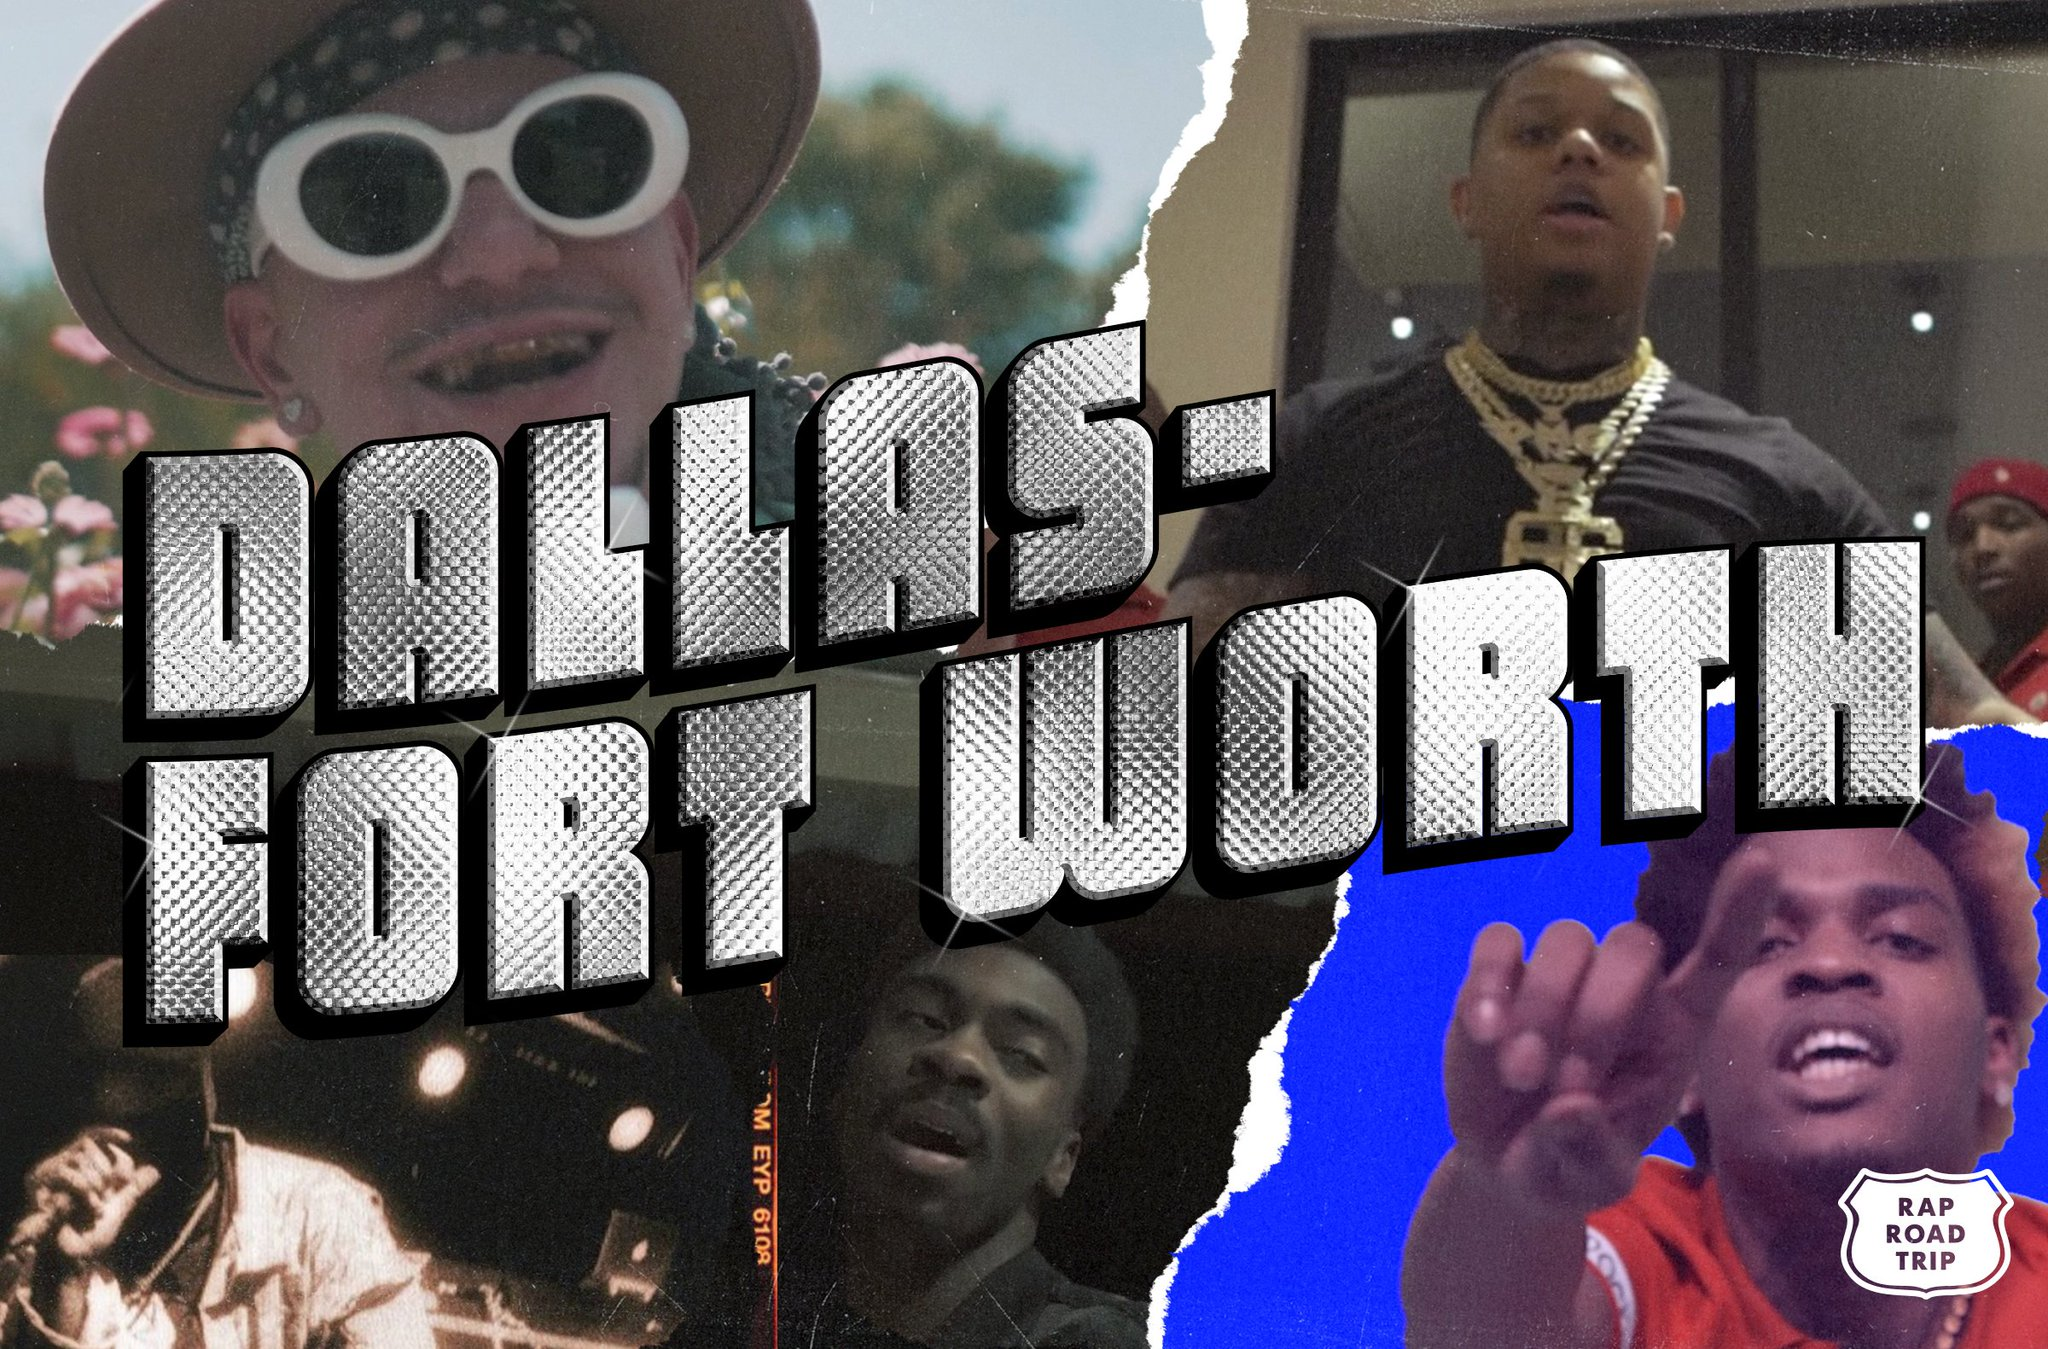 5 under-the-radar rappers from Dallas-Fort Worth you should know about. https://t.co/4RScnyD1aI https://t.co/2ZlT7129bb